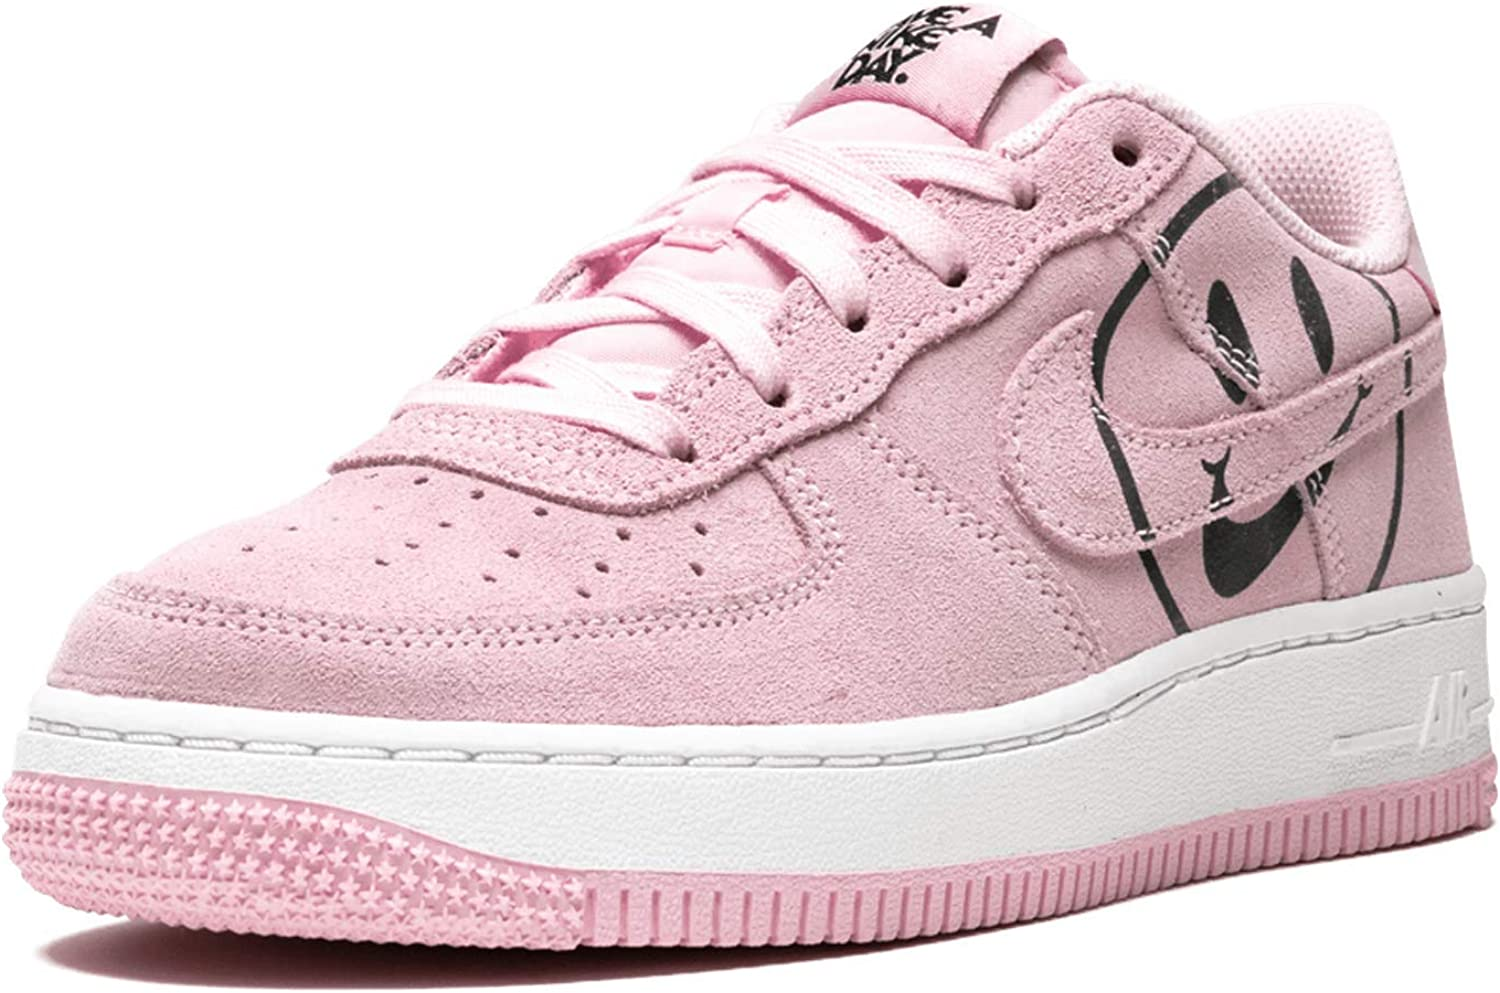 Nike Air Force 1 LV8 2 GS Kids Pink Have A Day AV0742-600